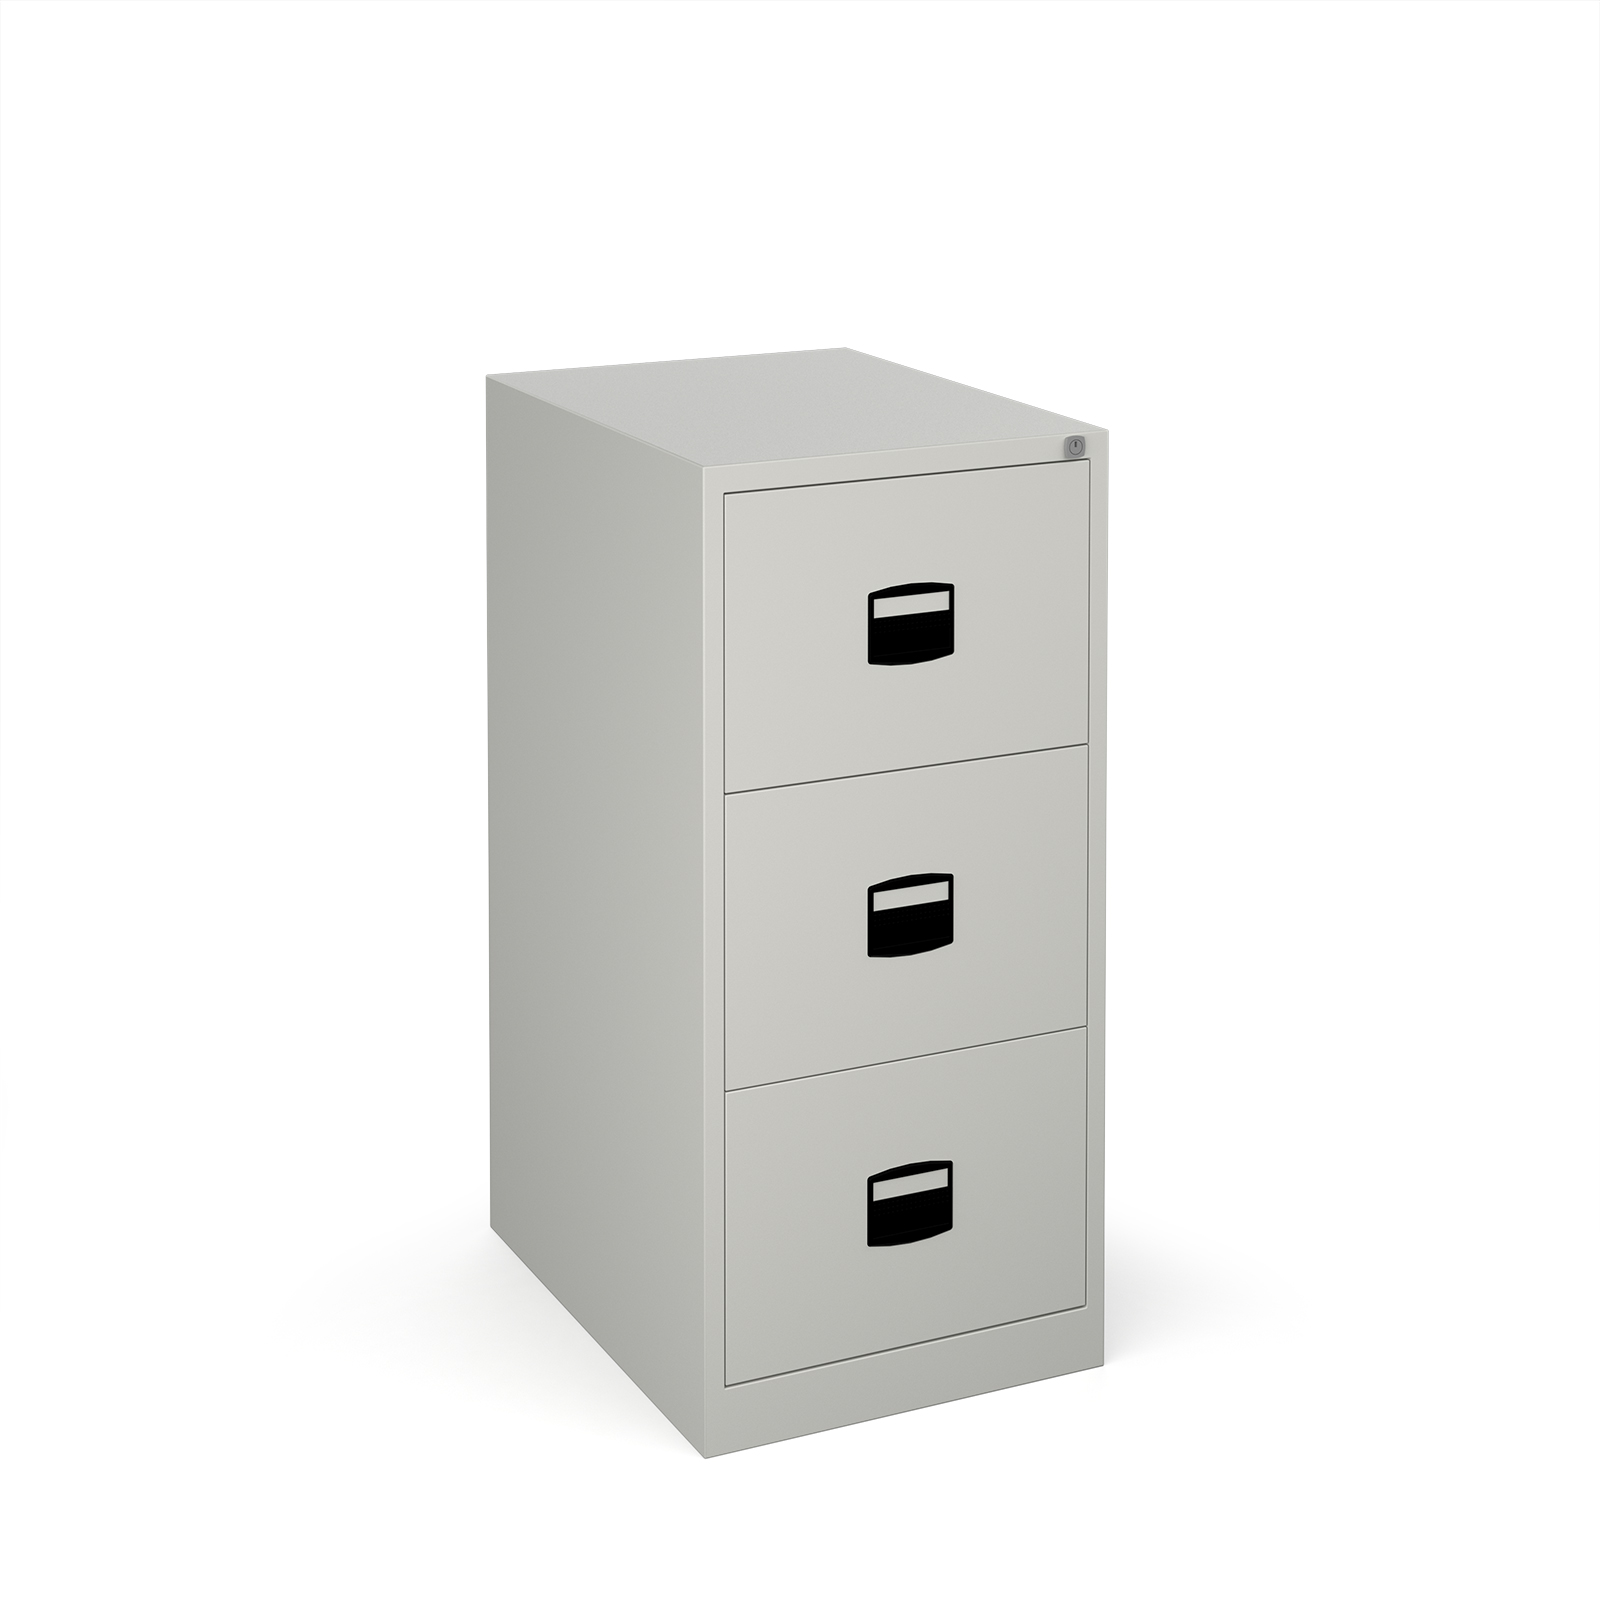 Steel Steel 3 drawer contract filing cabinet 1016mm high - goose grey